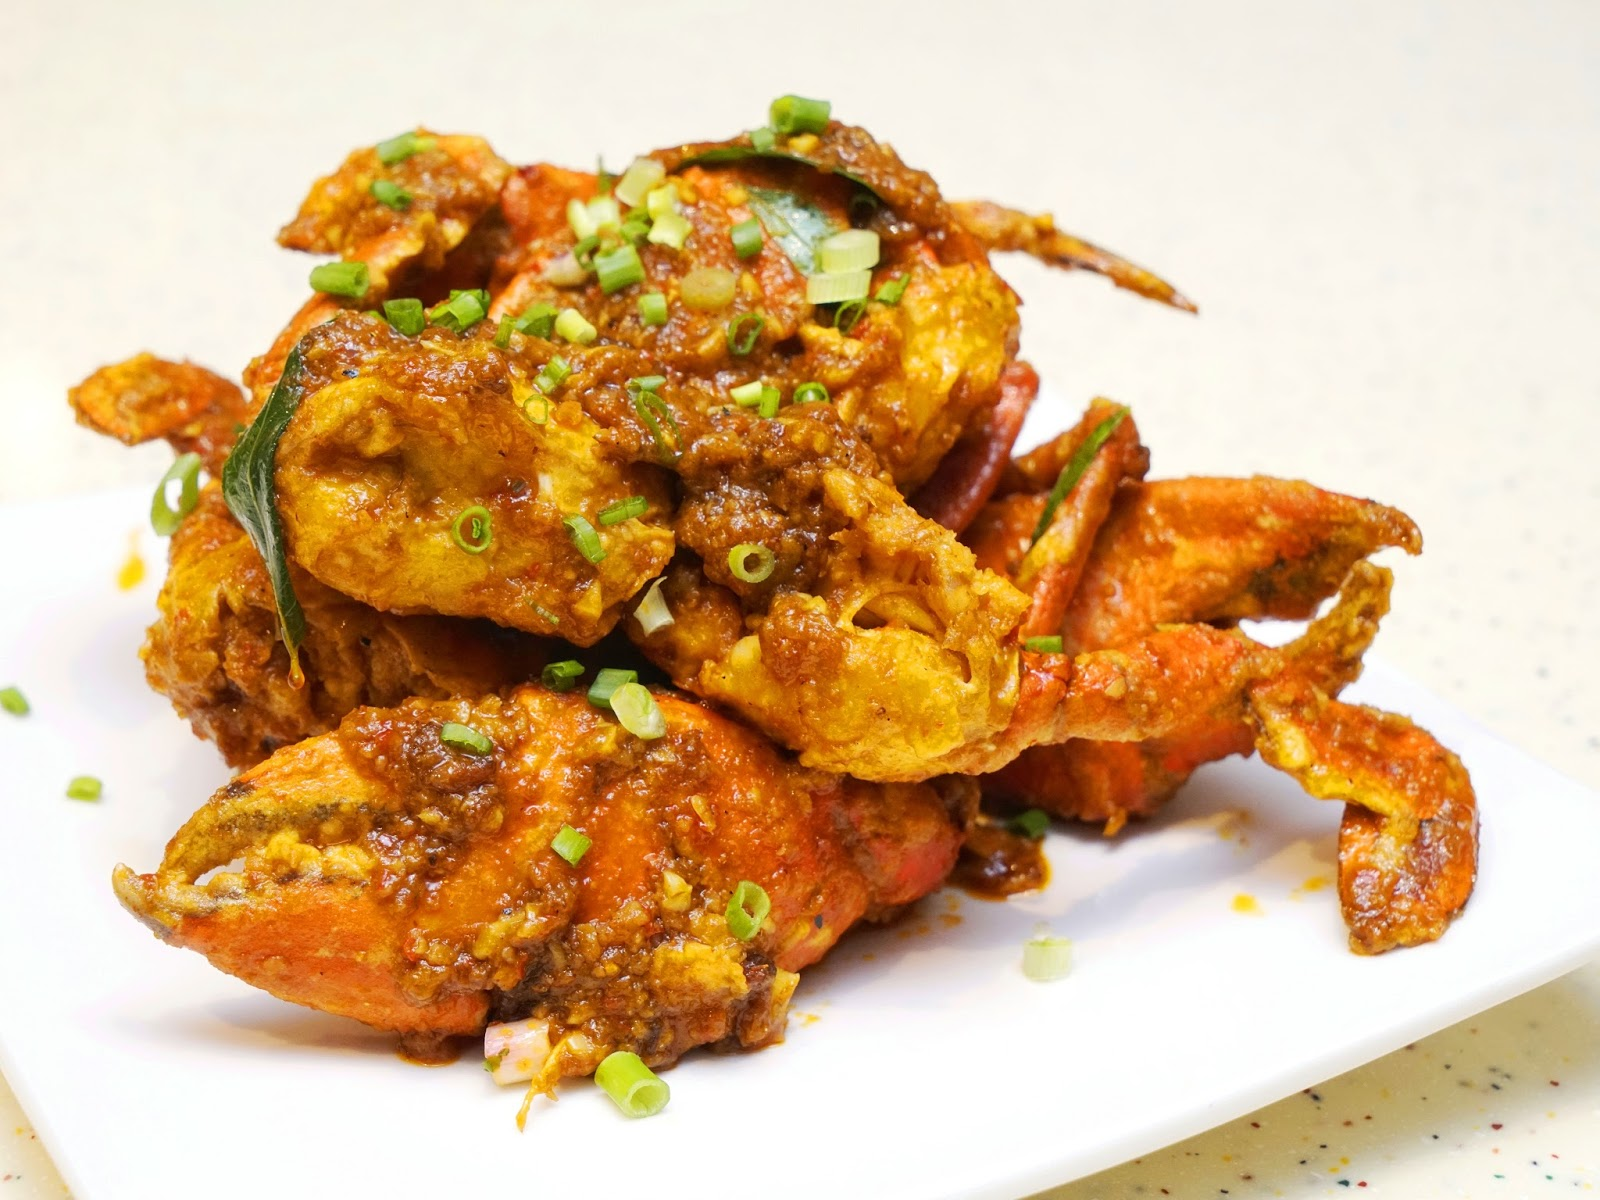 Parkroyal S Crab Feast Is Back Feast On As Many Crabs As: PinkyPiggu: Ultimate Crab Feast @ Plaza Brasserie